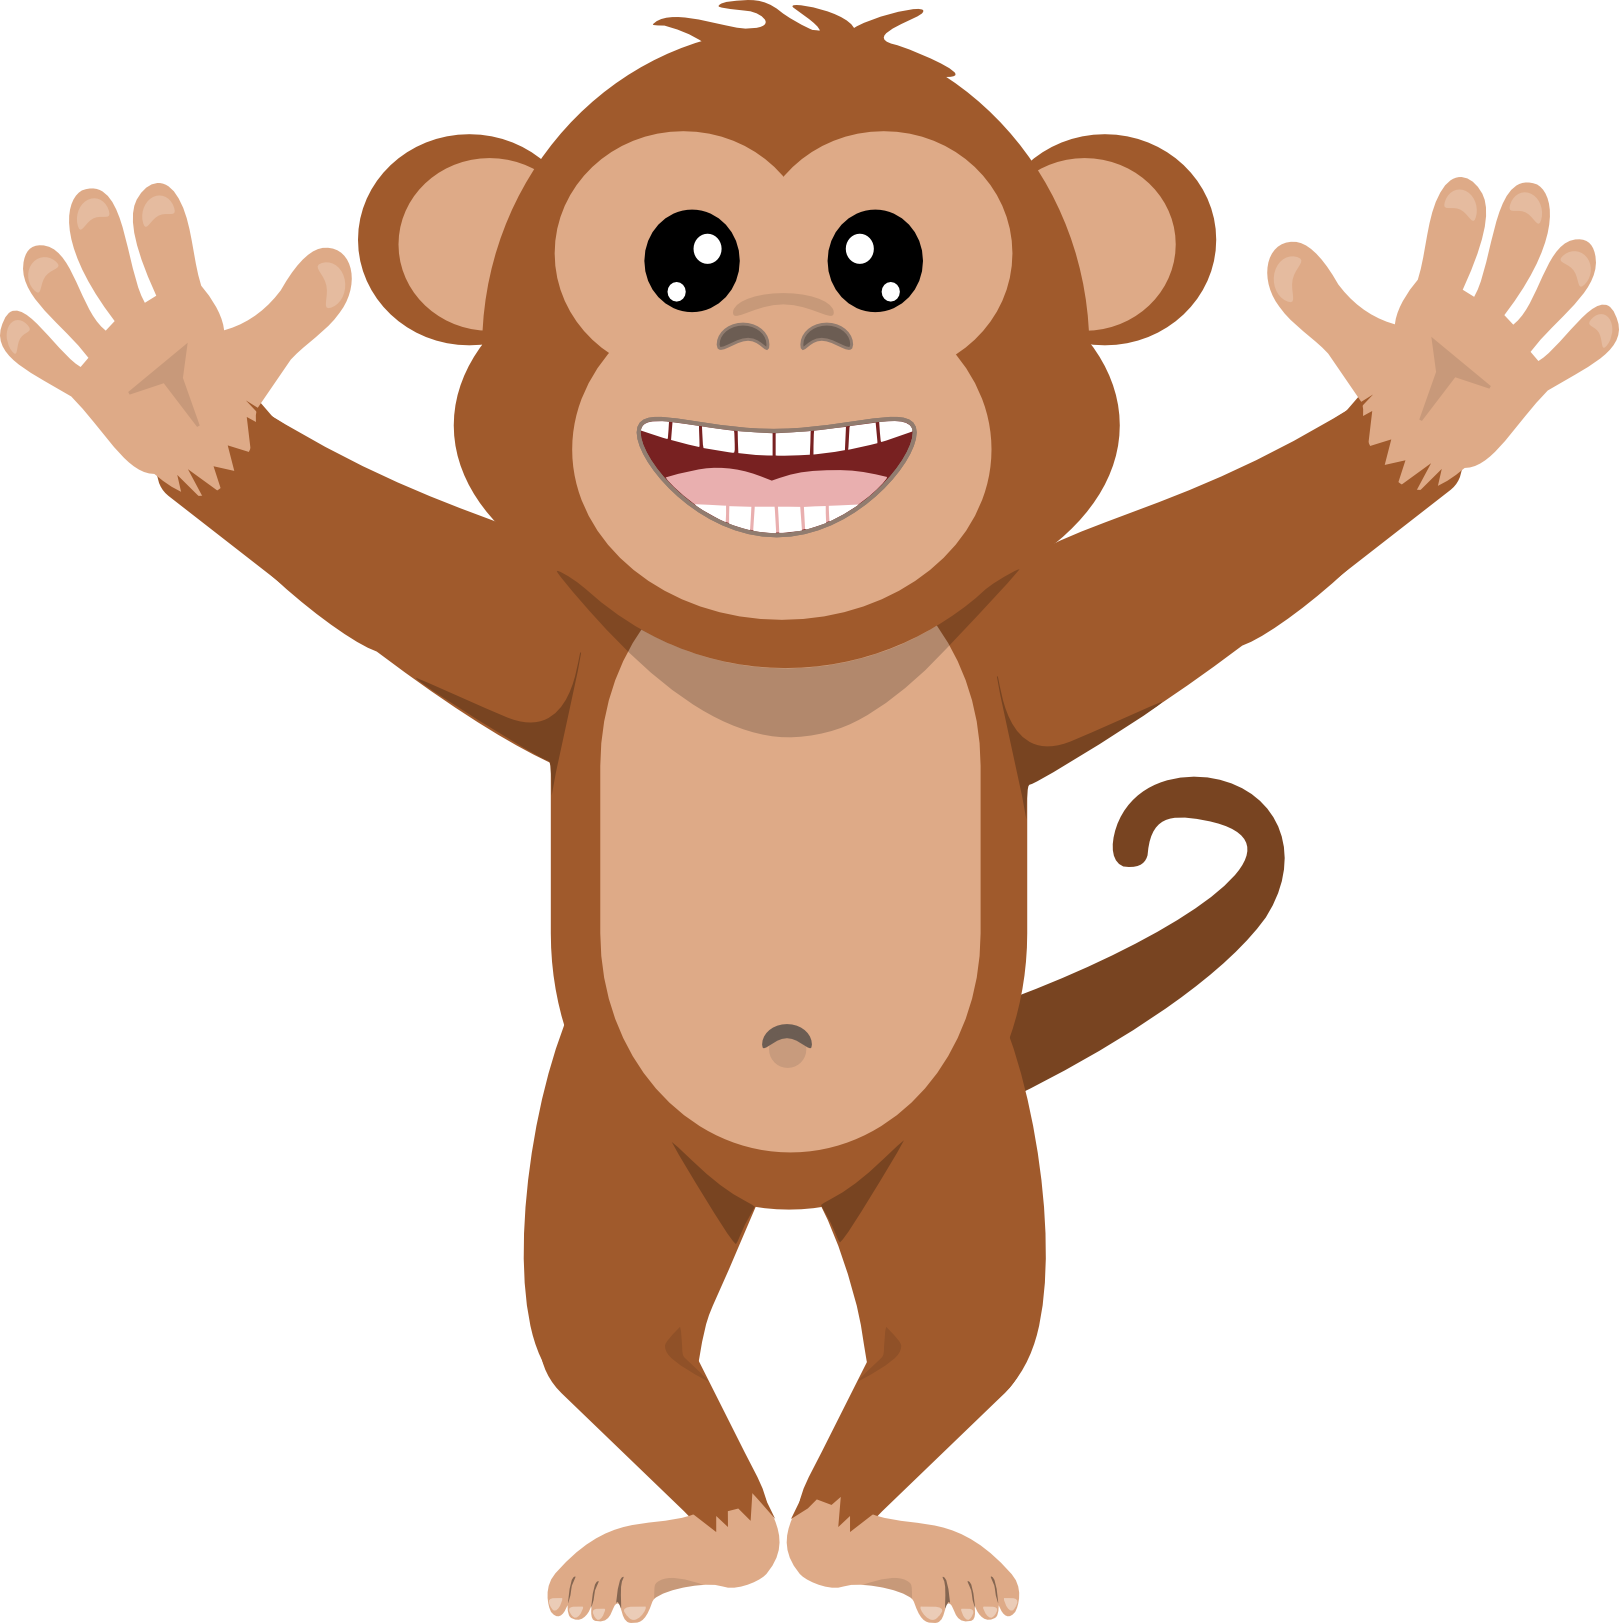 monkey clipart png 5  u00bb clipart station 5 monkeys clip art free images 5 monkeys clipart